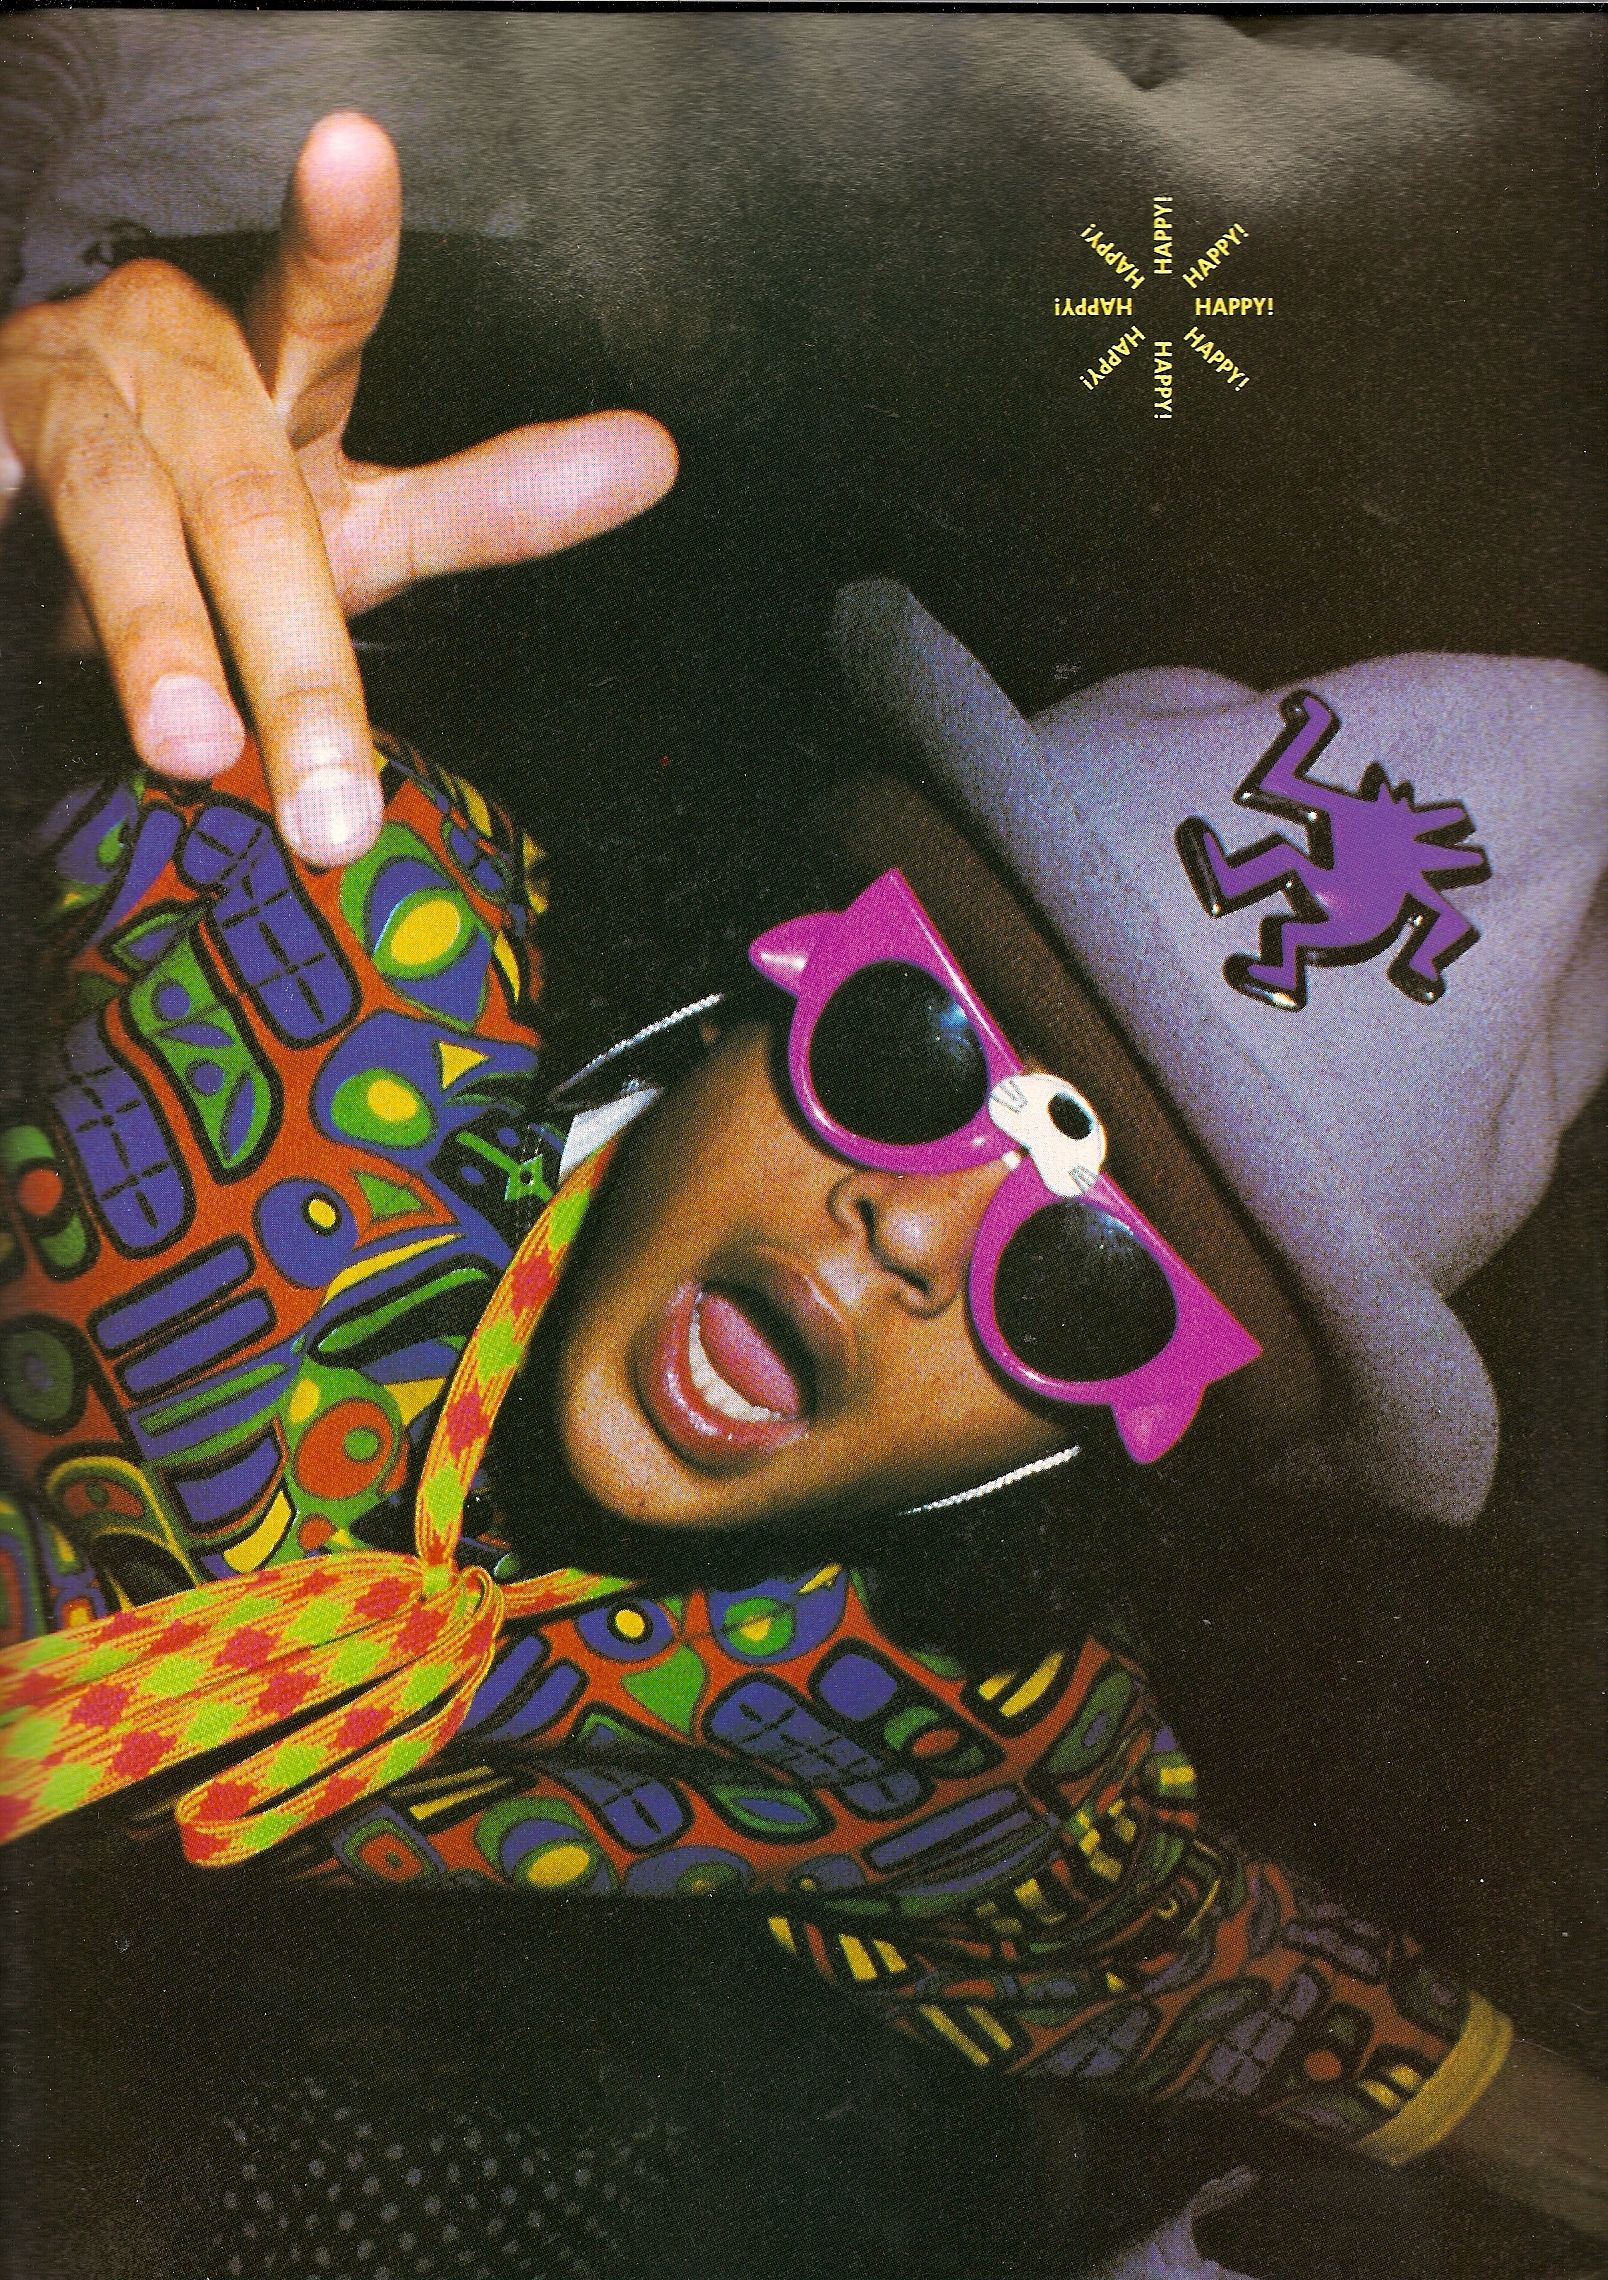 raves are the youth culture of today Acid house parties were held in illegal empty warehouses, electronic dance music filled the air with thumping beats and the prevalence of ecstasy fuelled an euphoric explosion in youth culture.